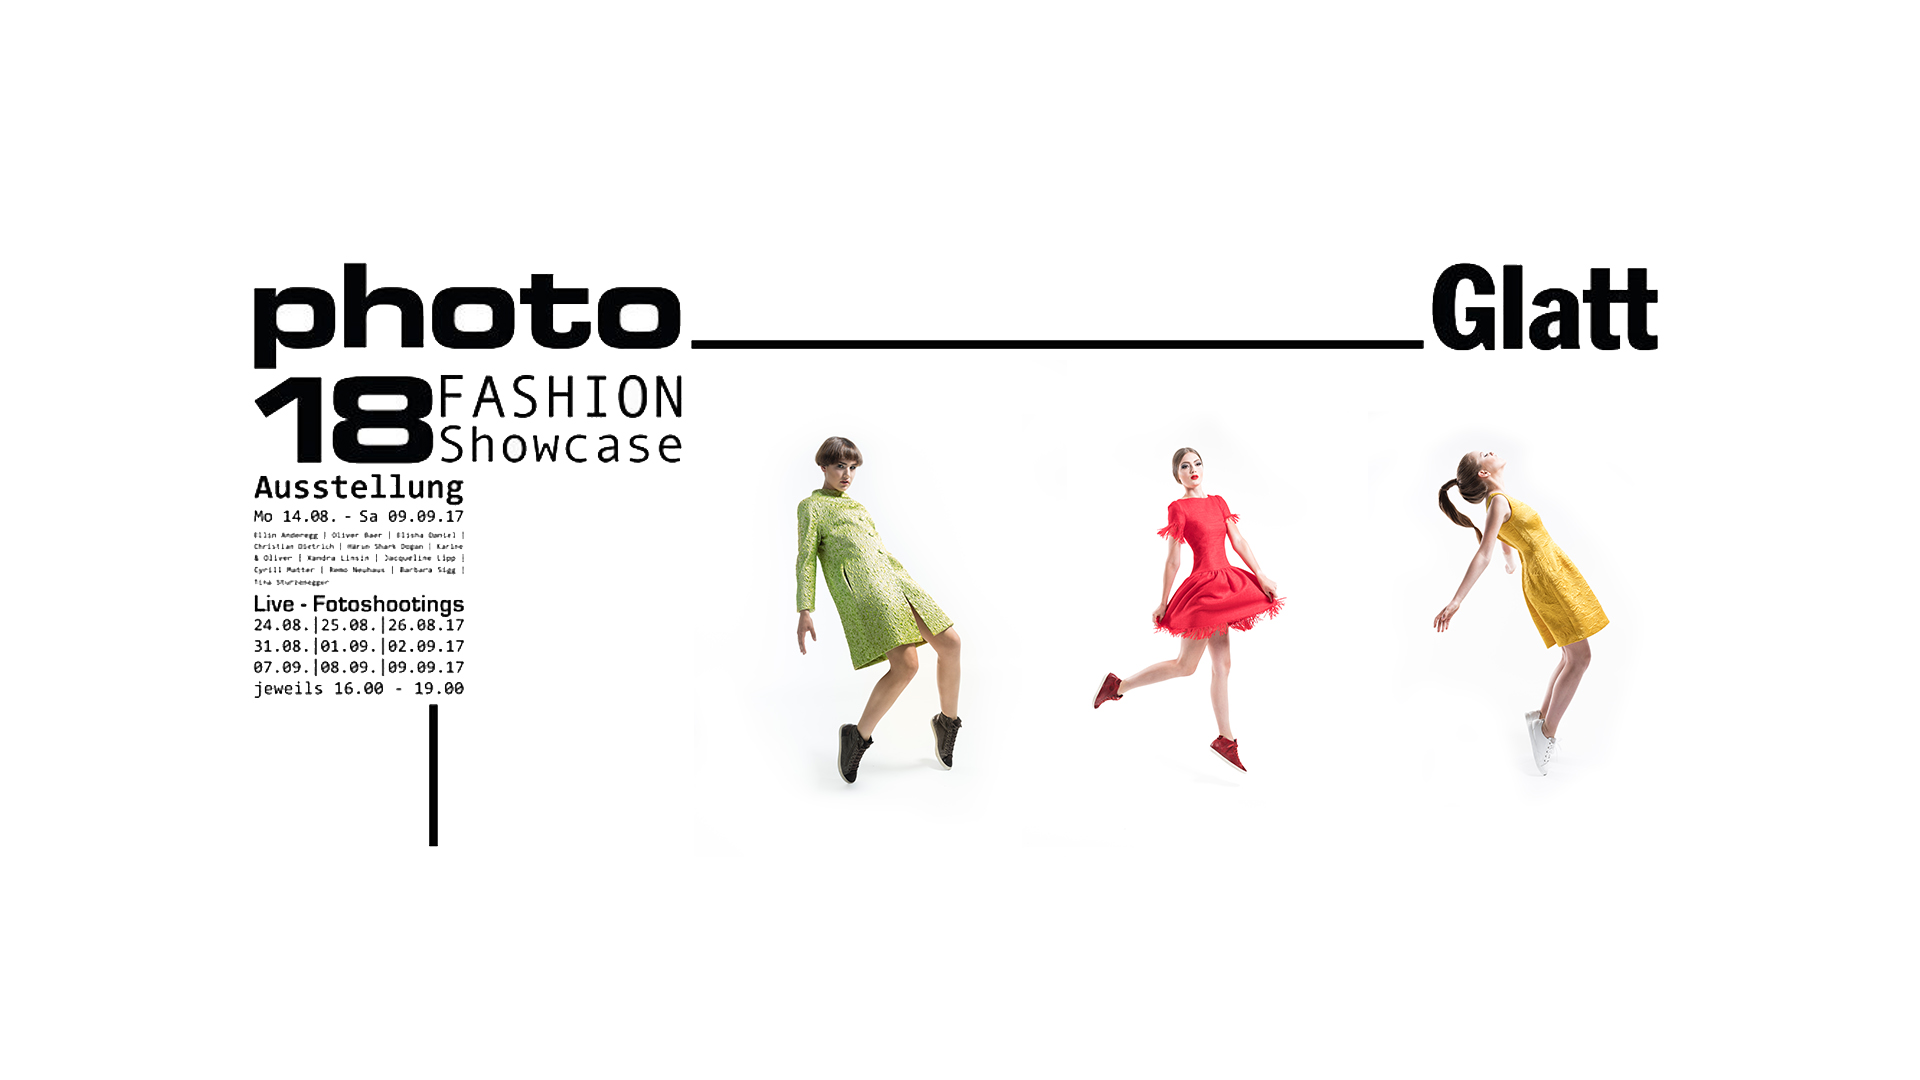 GLATT photo 18 Fashion Showcase